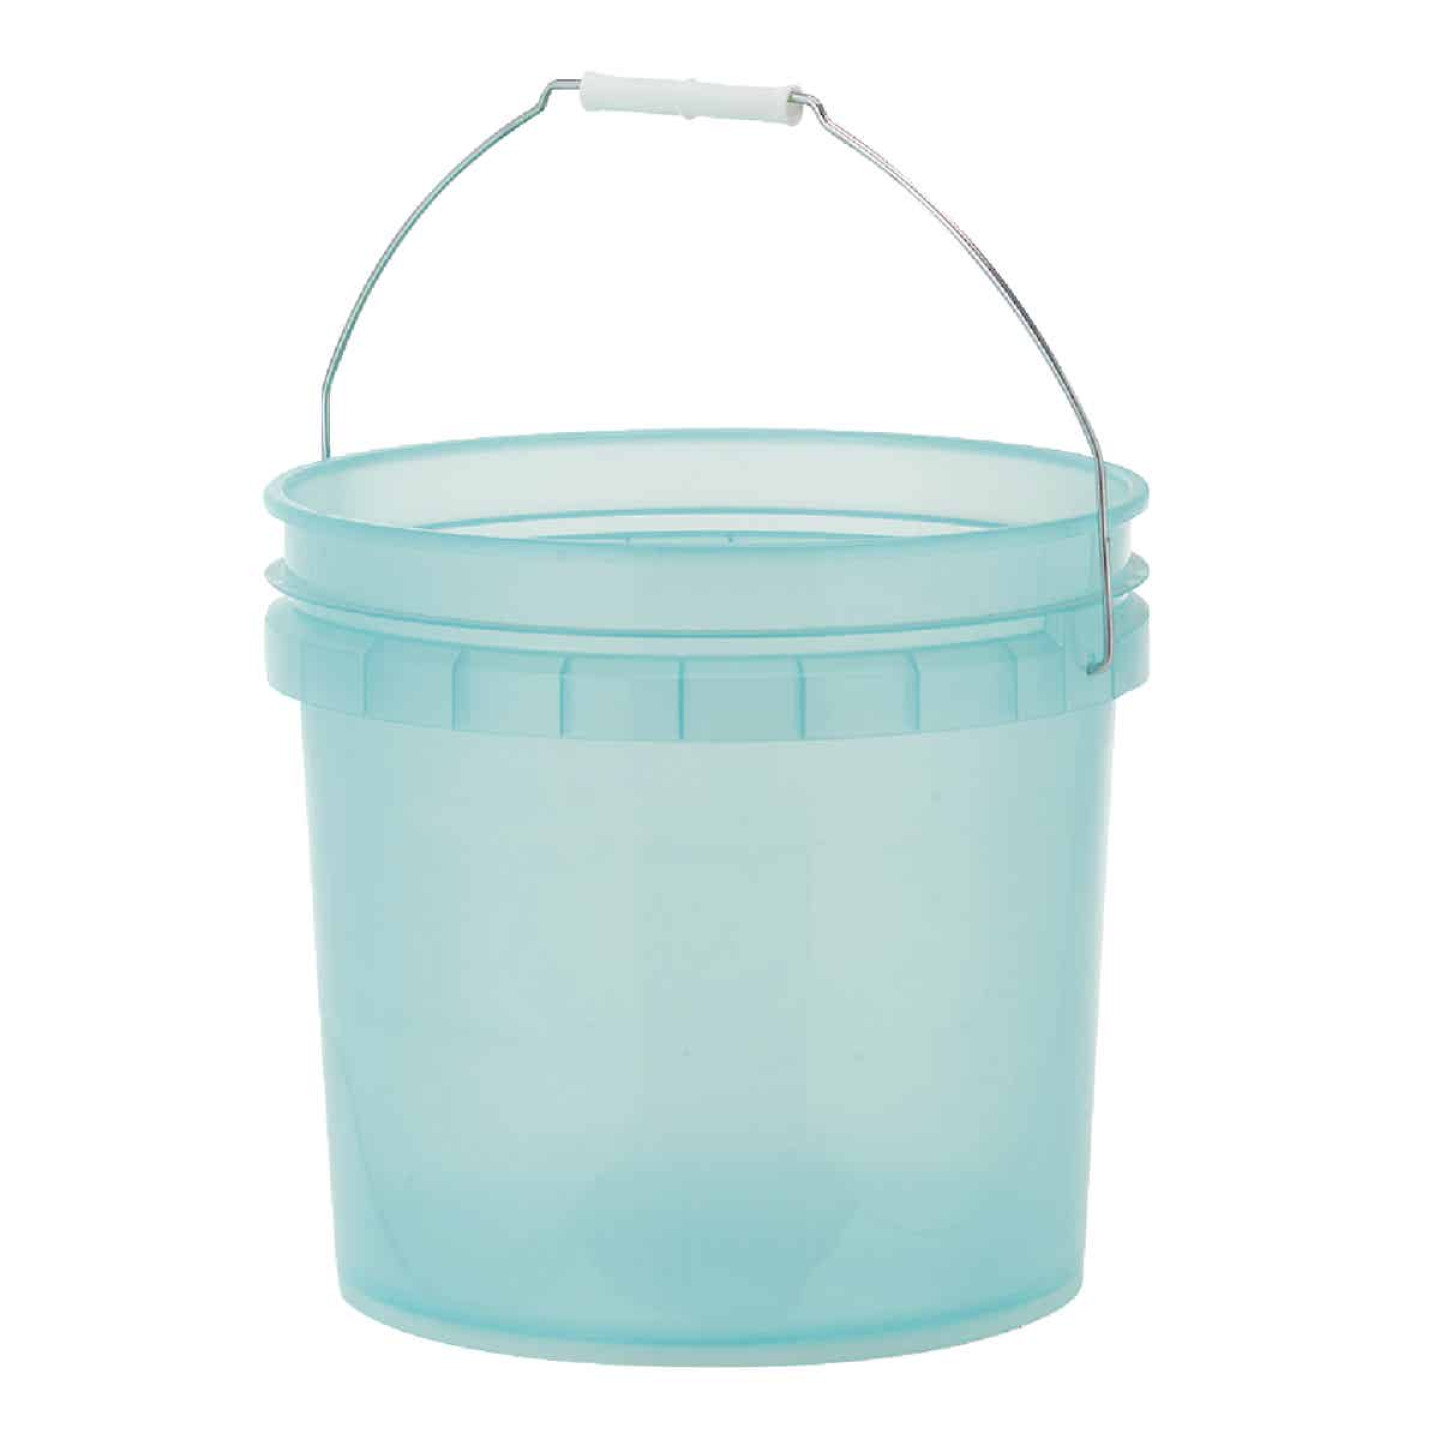 Leaktite 3.5 Gal. Green Translucent Pail Image 1